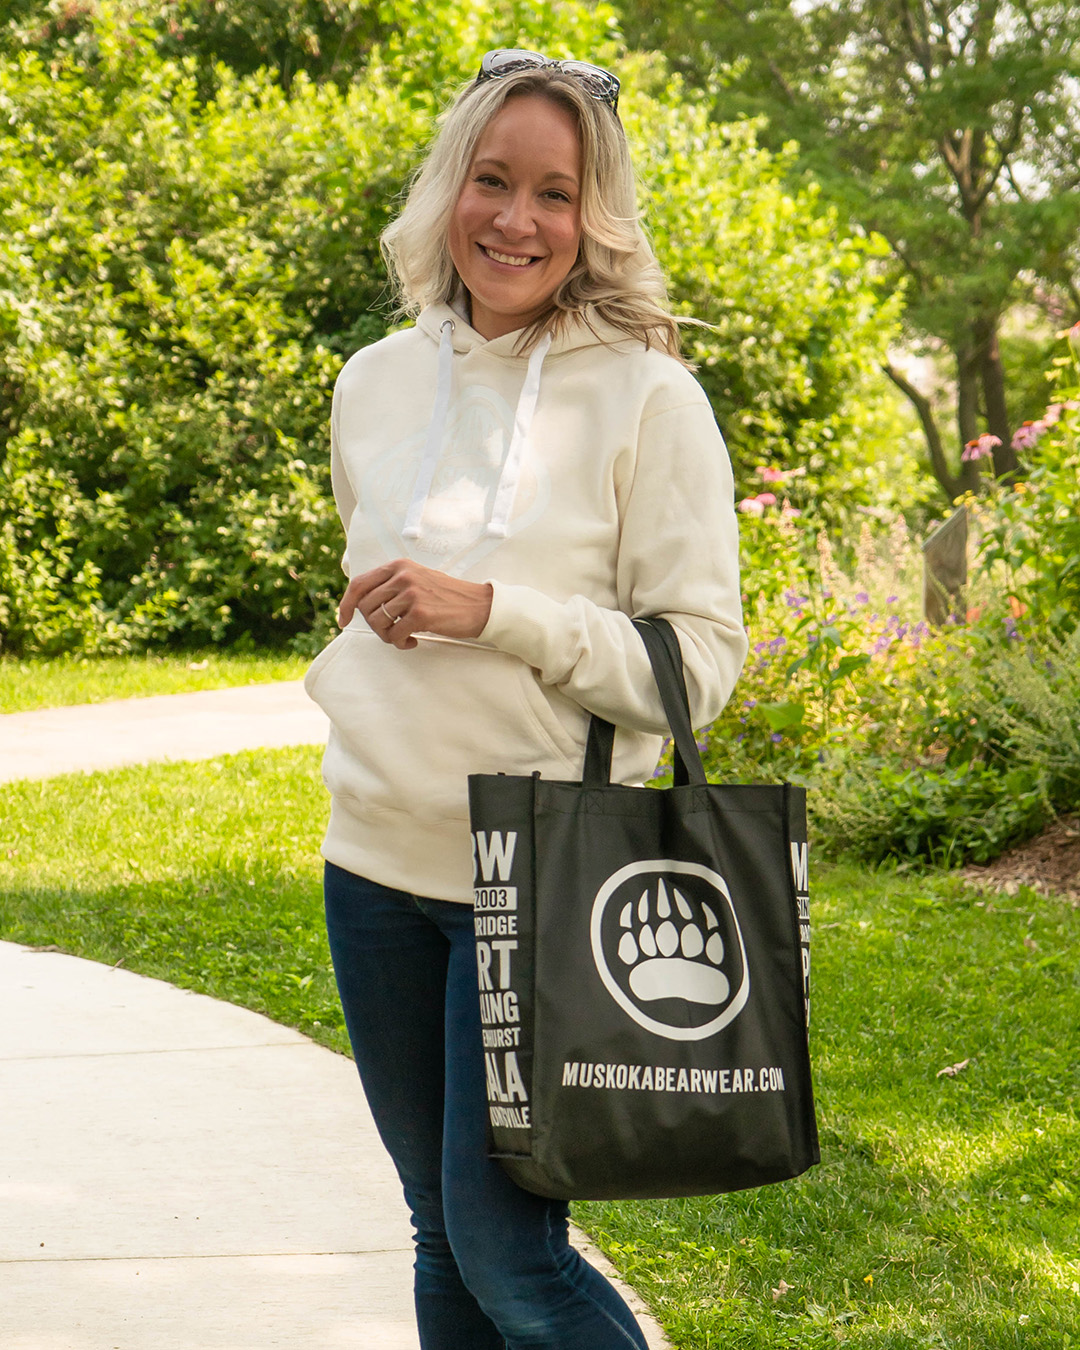 Product Shot of woman wearing a Ivory White Hoody with a white Muskoka Bear Wear logo on the frnot.